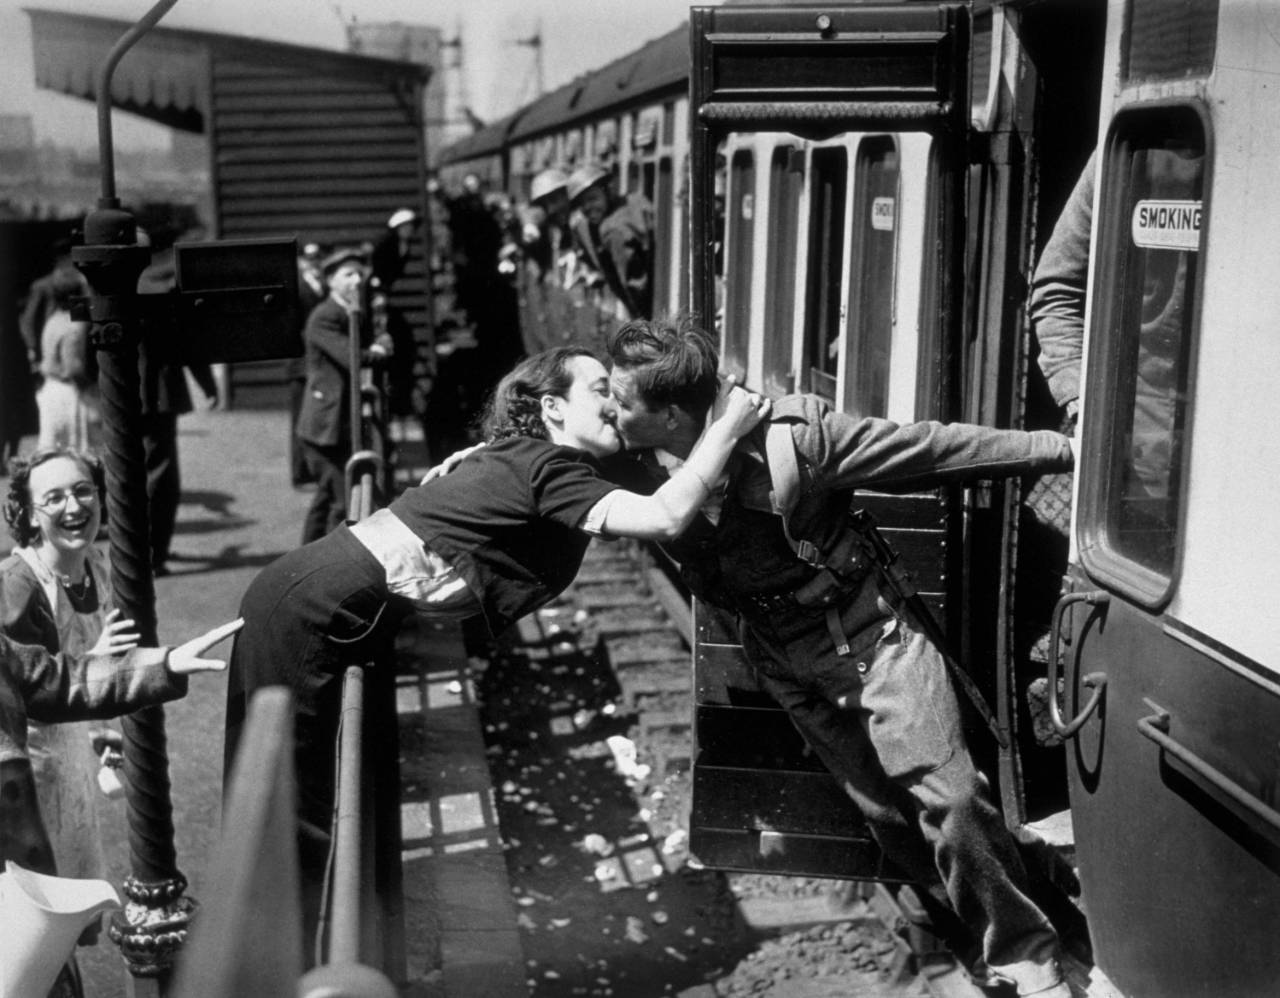 A soldier of the British Expeditionary Force, arriving back from Dunkirk, is greeted affectionately by his girlfriend. (Photo by Topical Press/Getty Images)